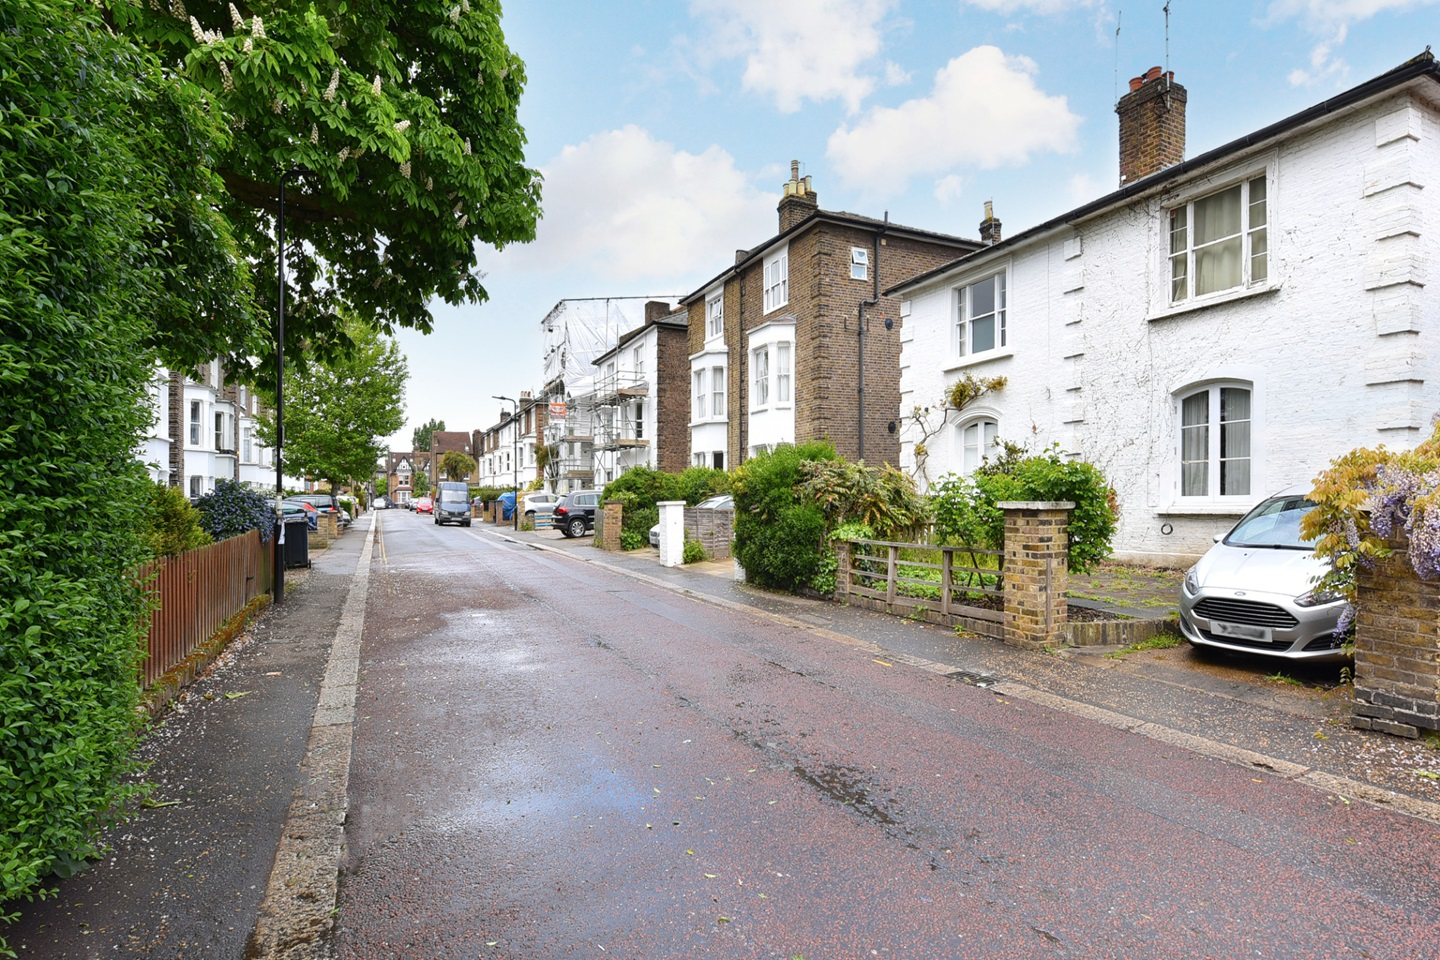 London - 2 Bed Flat, Ealing, W13 - To Rent Now for £1,600 ...